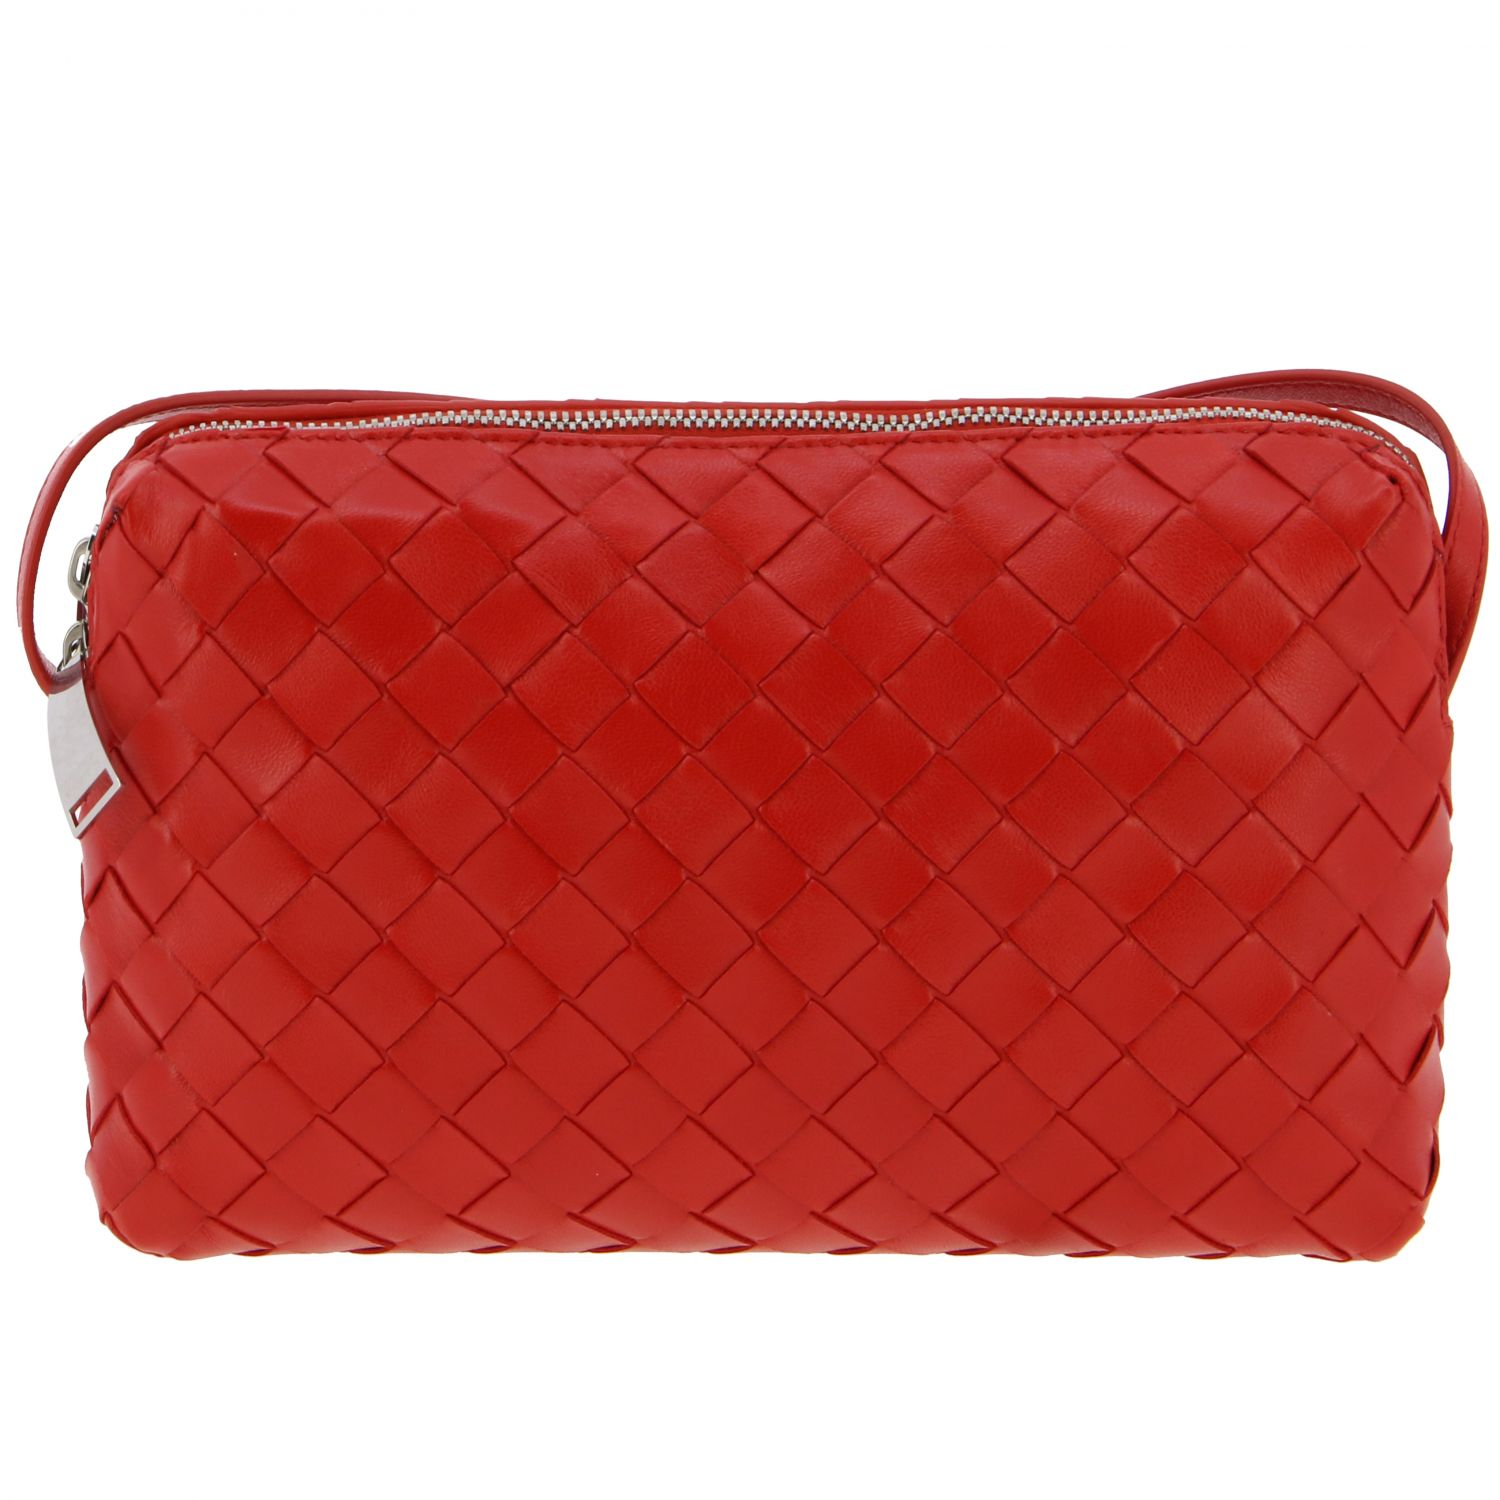 Crossbody bags Bottega Veneta: Shoulder bag women Bottega Veneta red 1